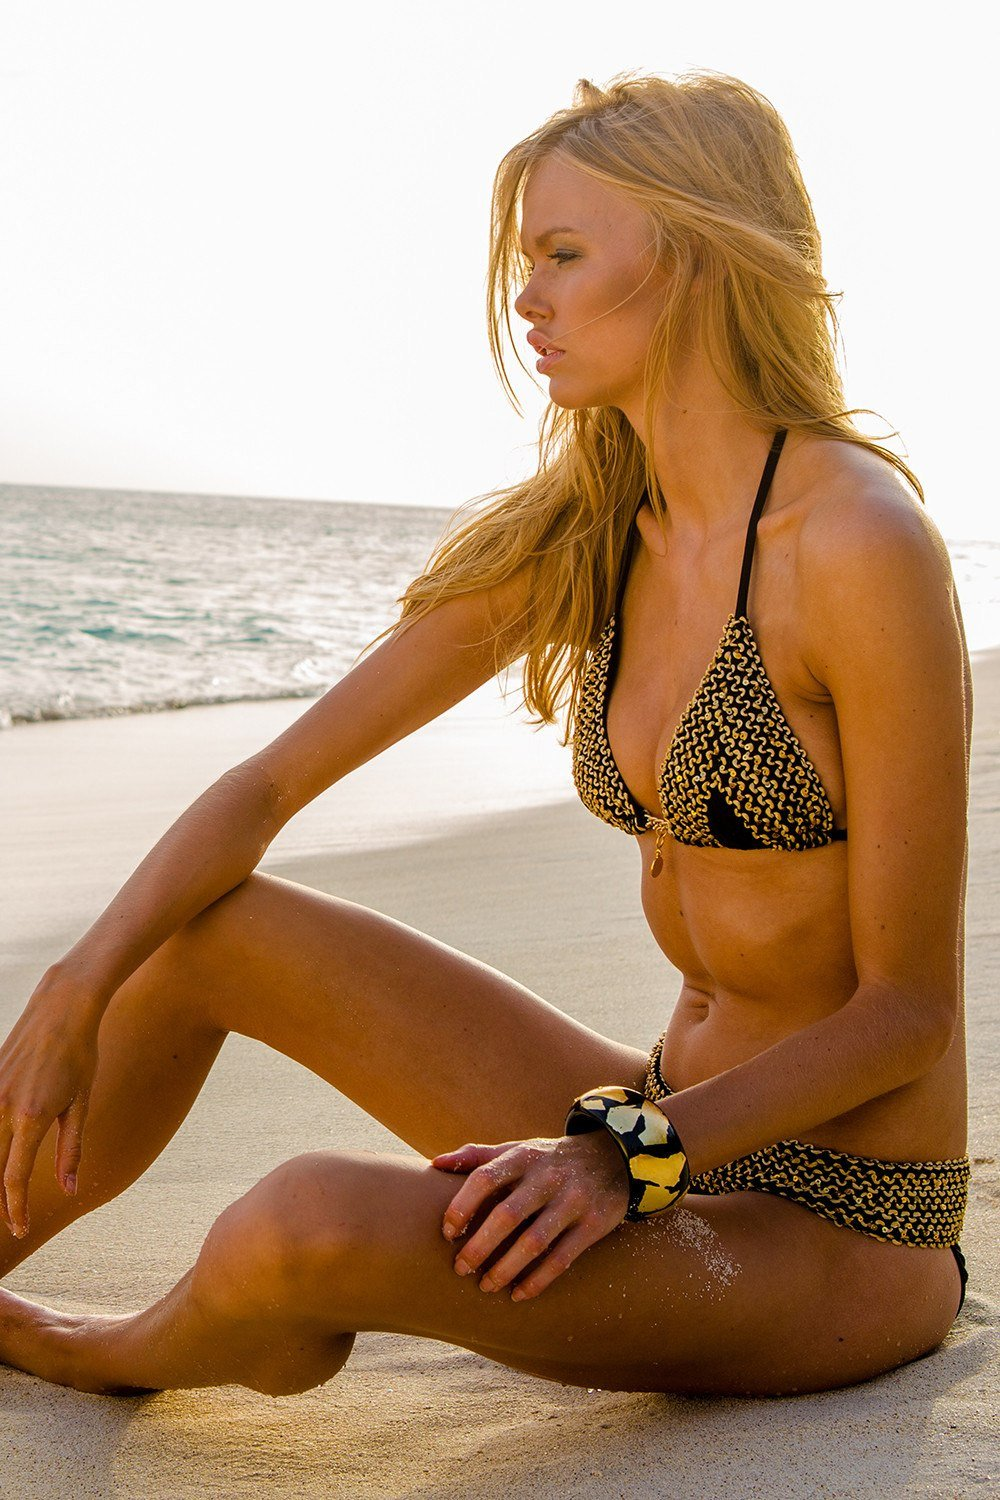 Sauvage Swimwear, Designer Swimwear from San Diego, CA made in usaRoma Bikini, , Swim, sauvage swimwear, Sauvage - 3